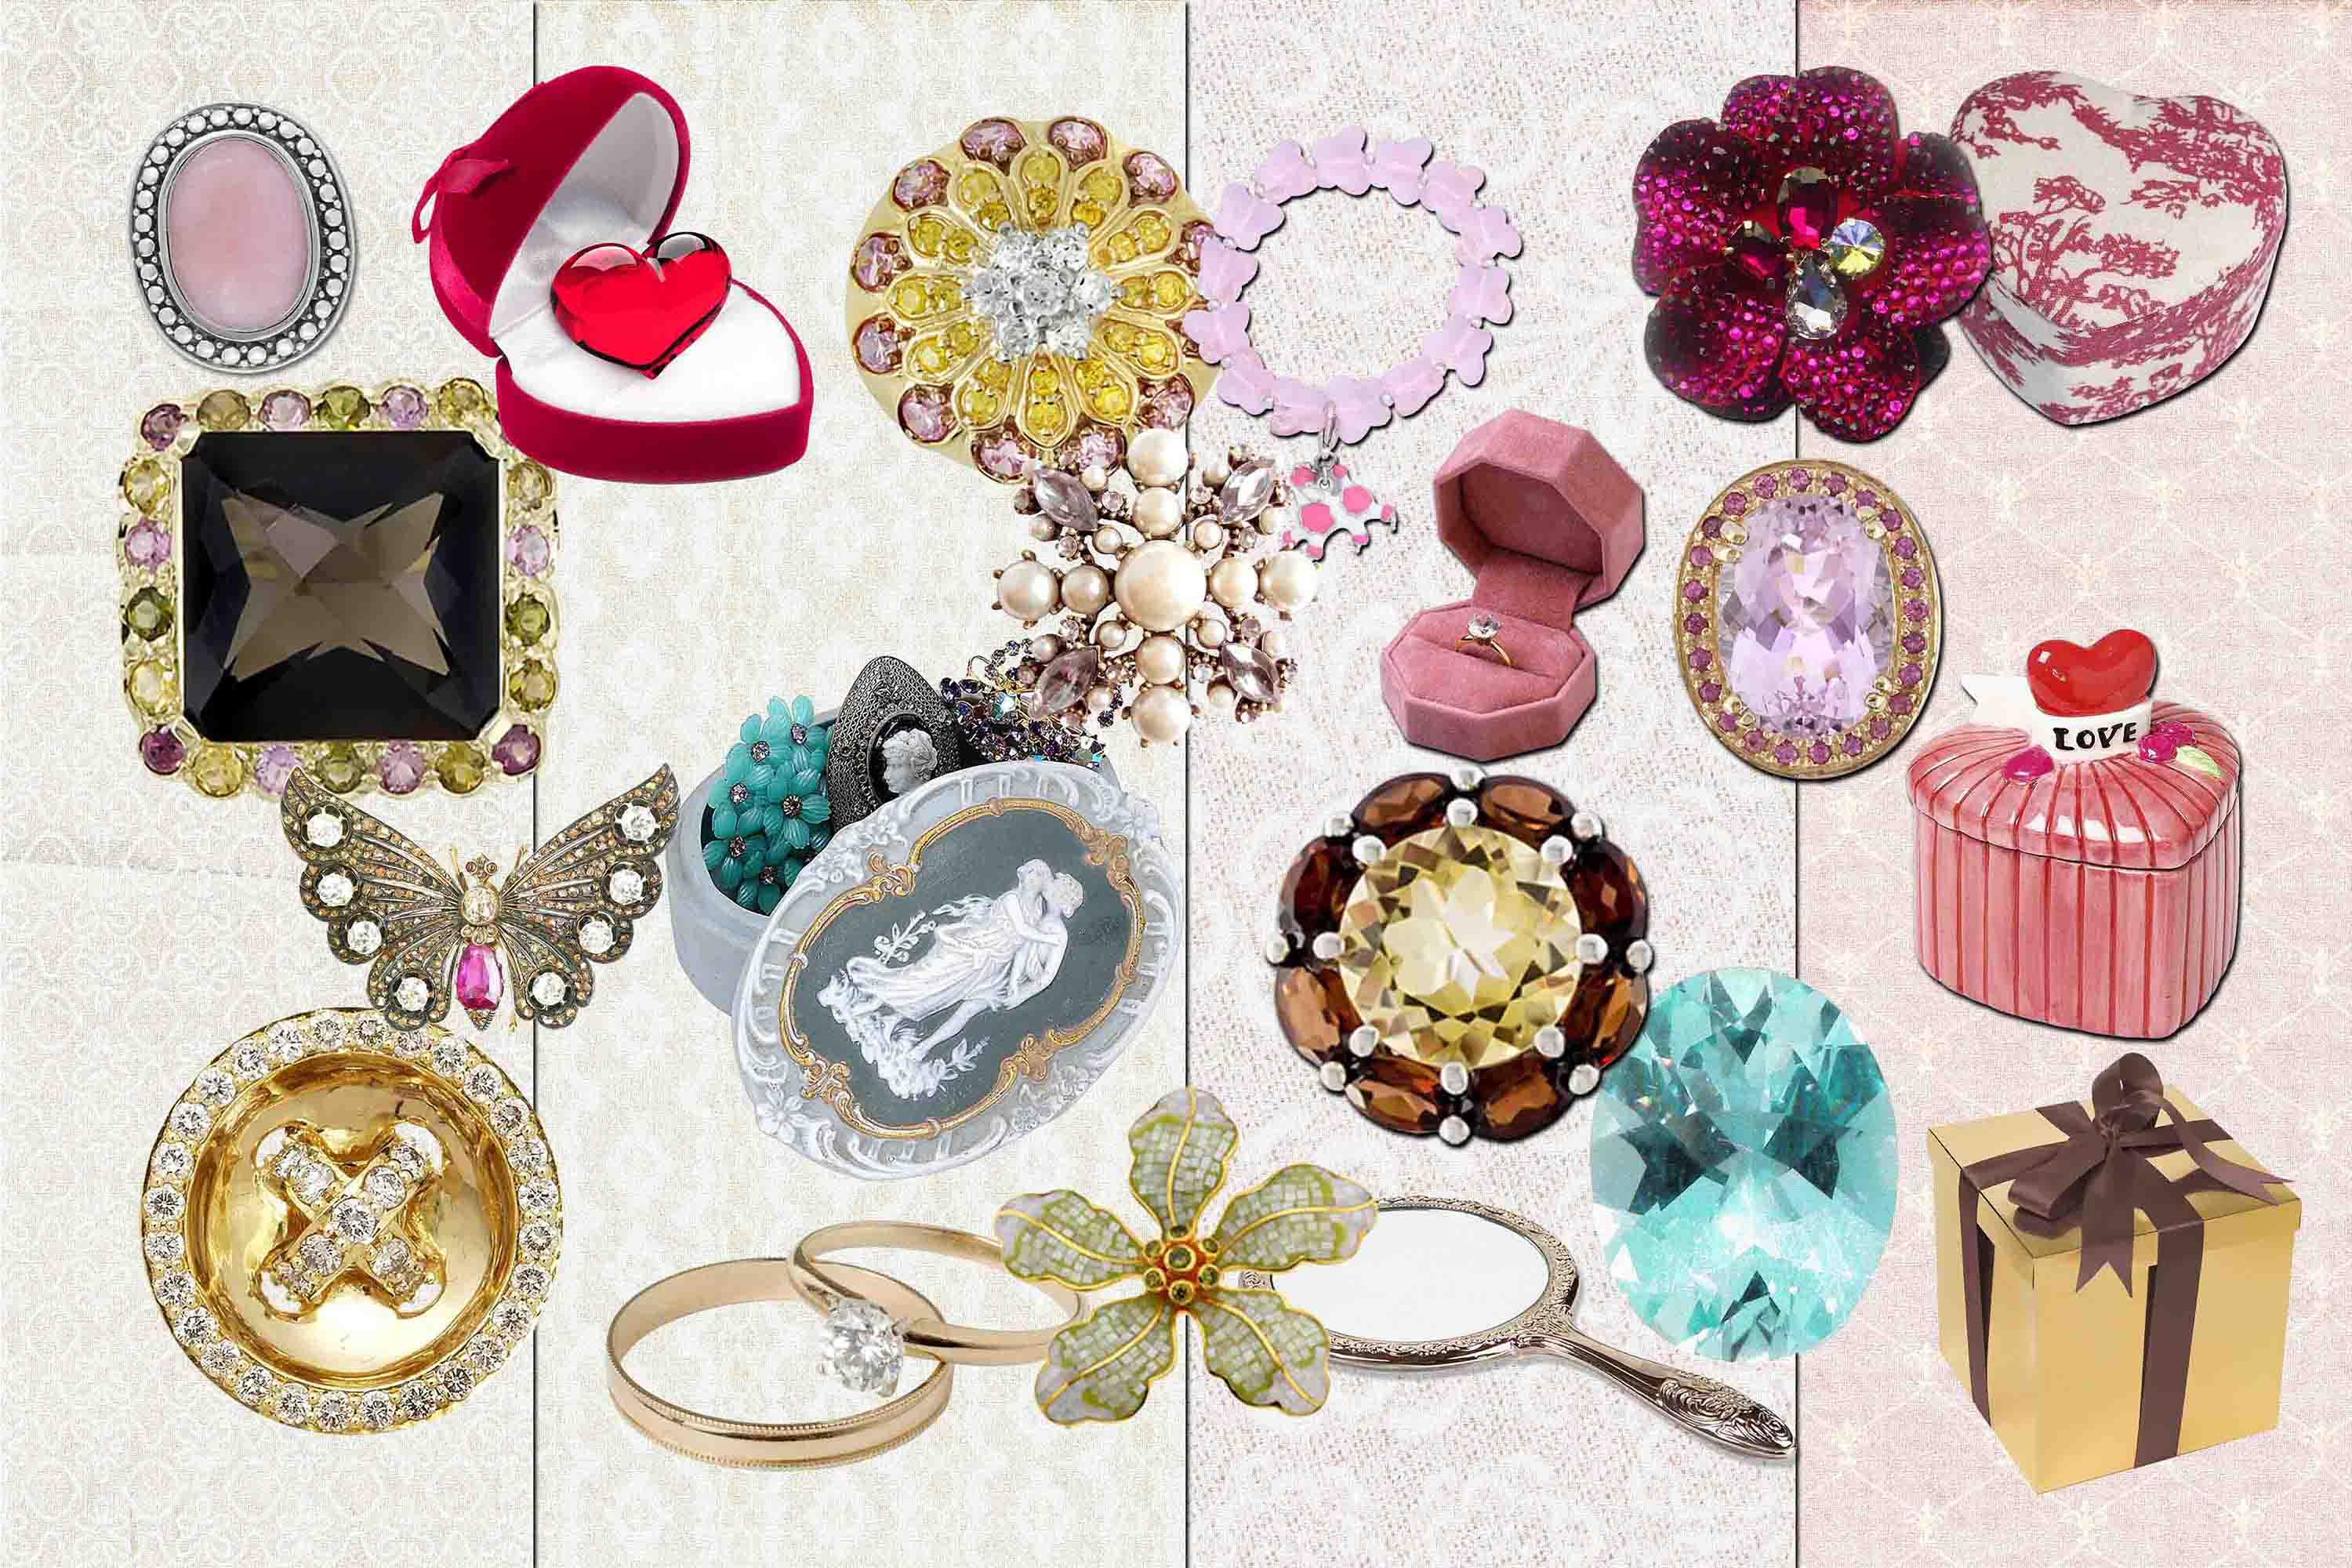 Jewelry Clipart Jewellery Model - Transparent Jewelry Clip Art, HD Png  Download - 640x480(#426283) - PngFind